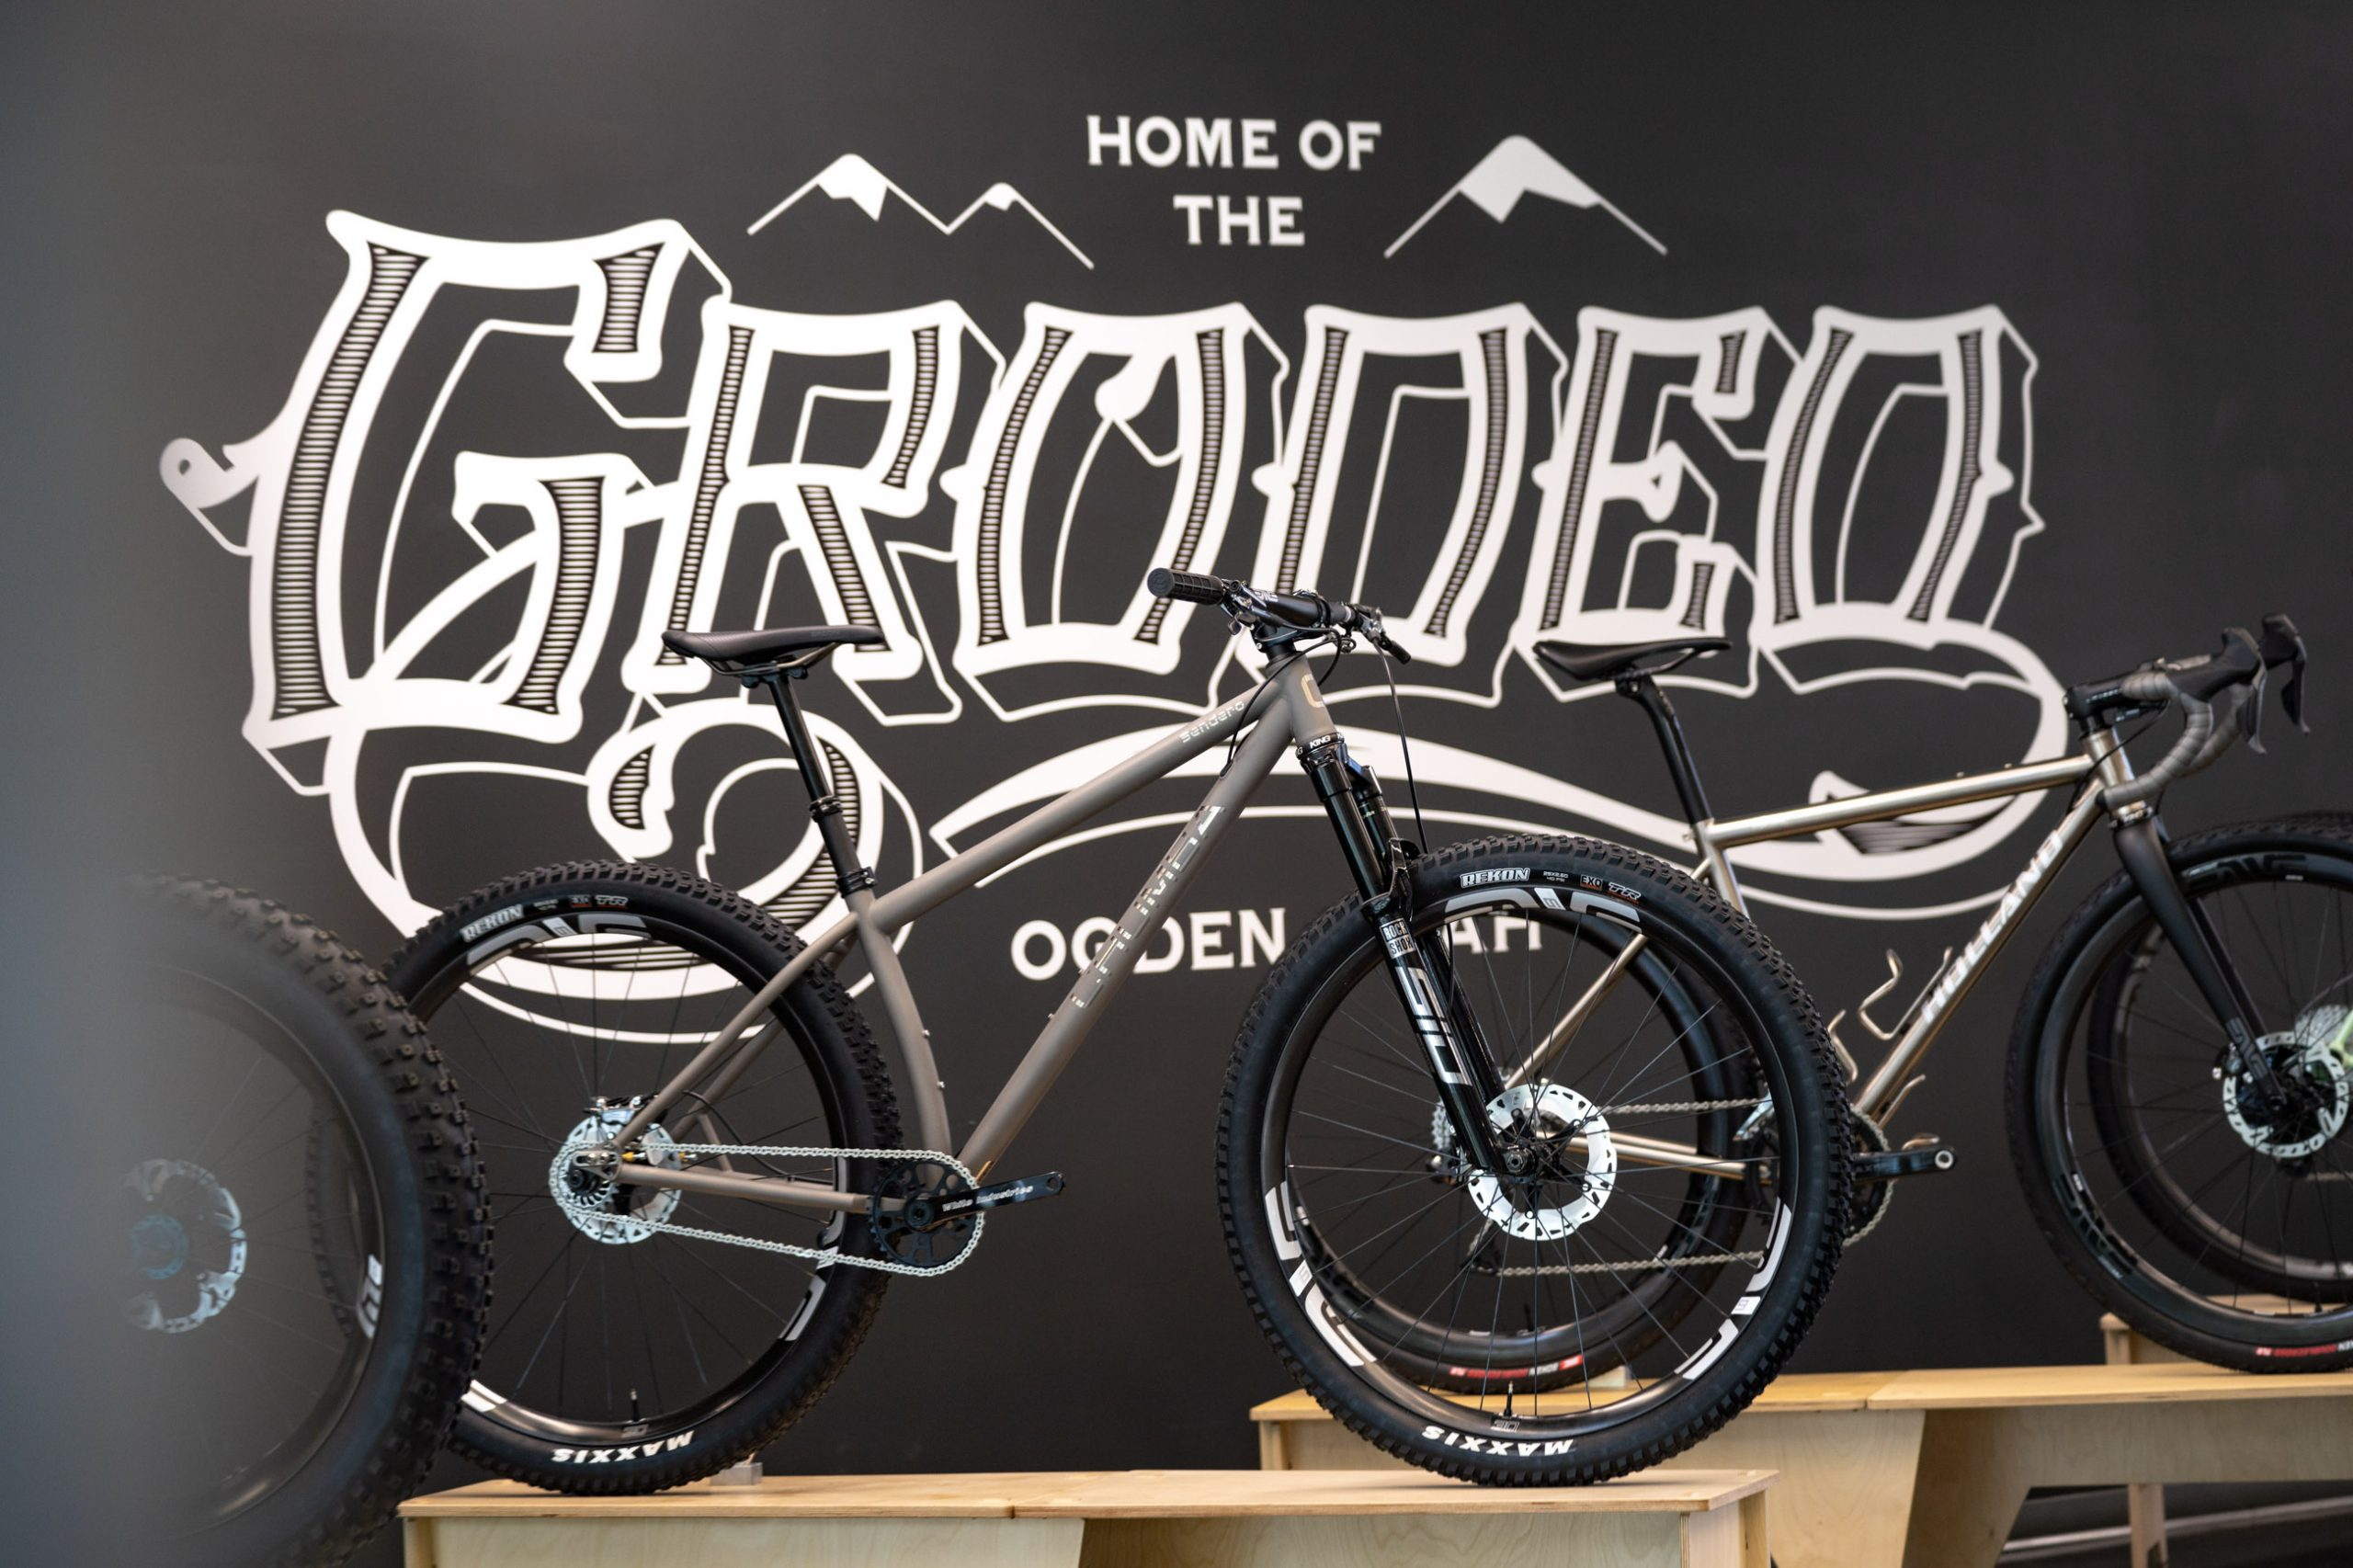 ENVE's Grodeo Custom bike Round-Up & Ride Brings Cycling's Best to the Wasatch